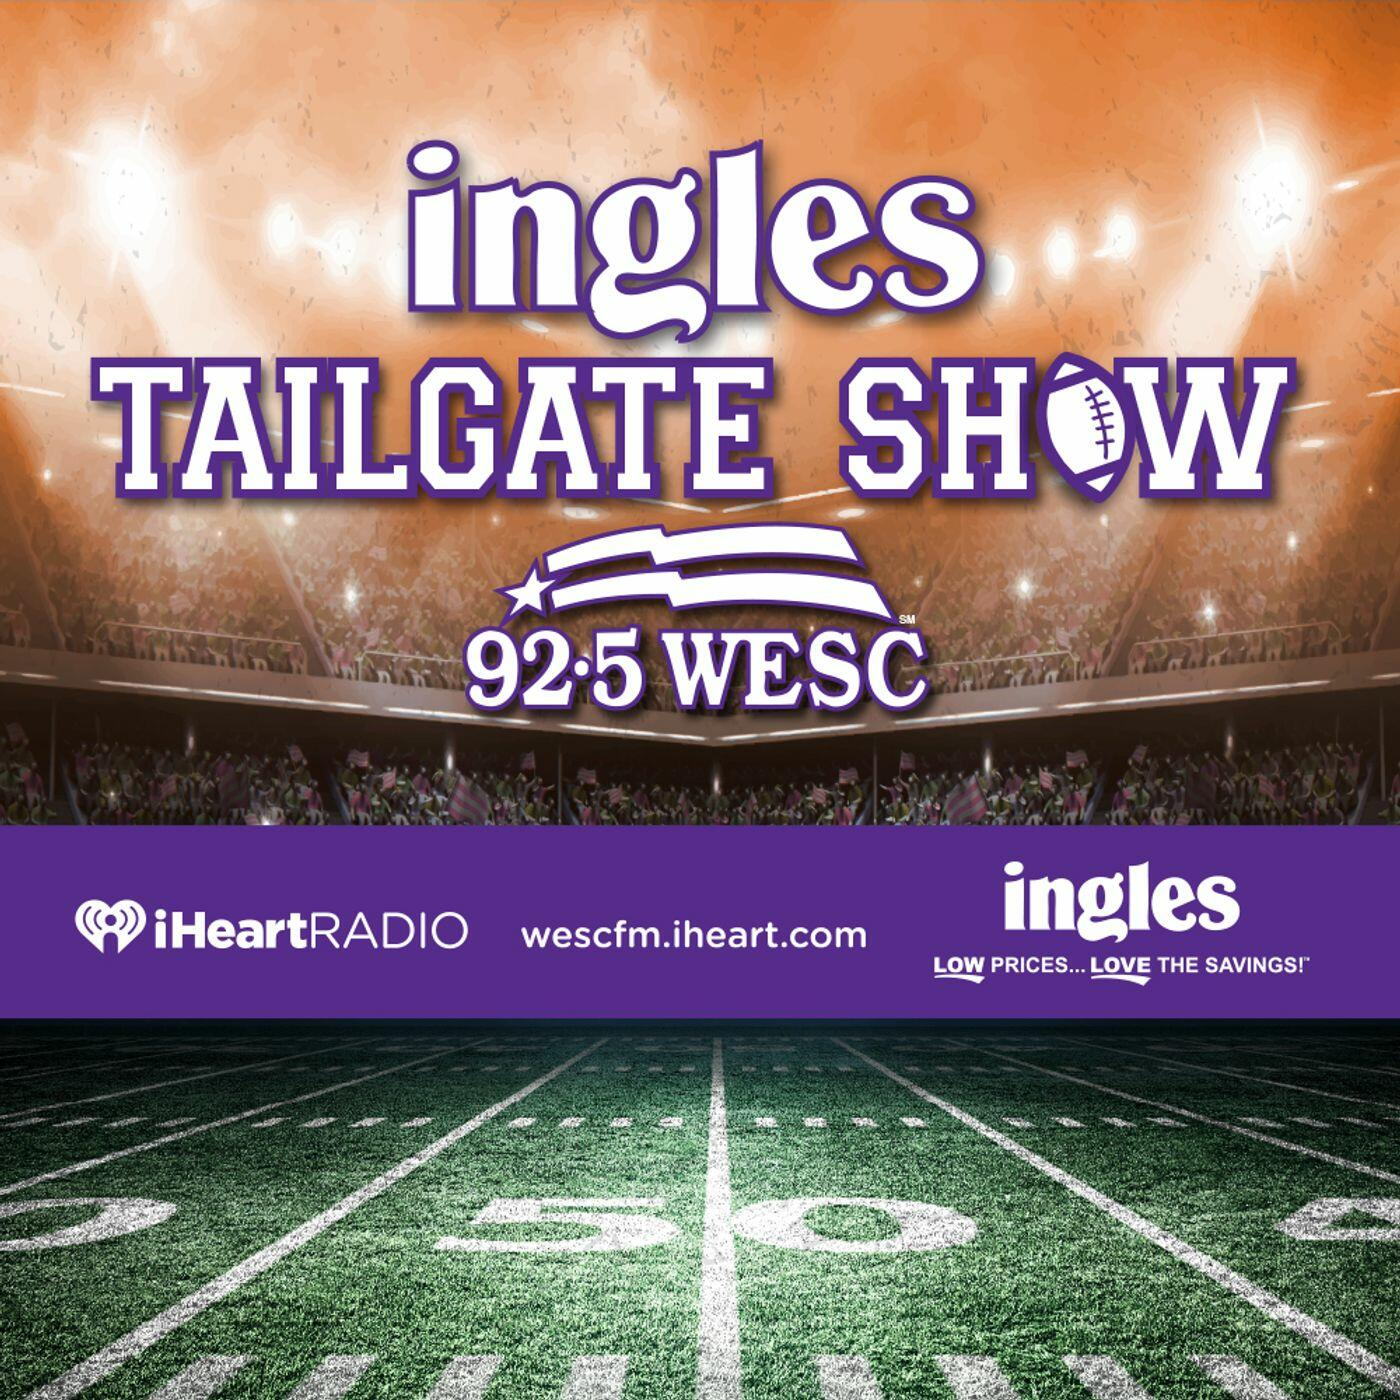 The Ingles Tailgate Show on 92.5 WESC